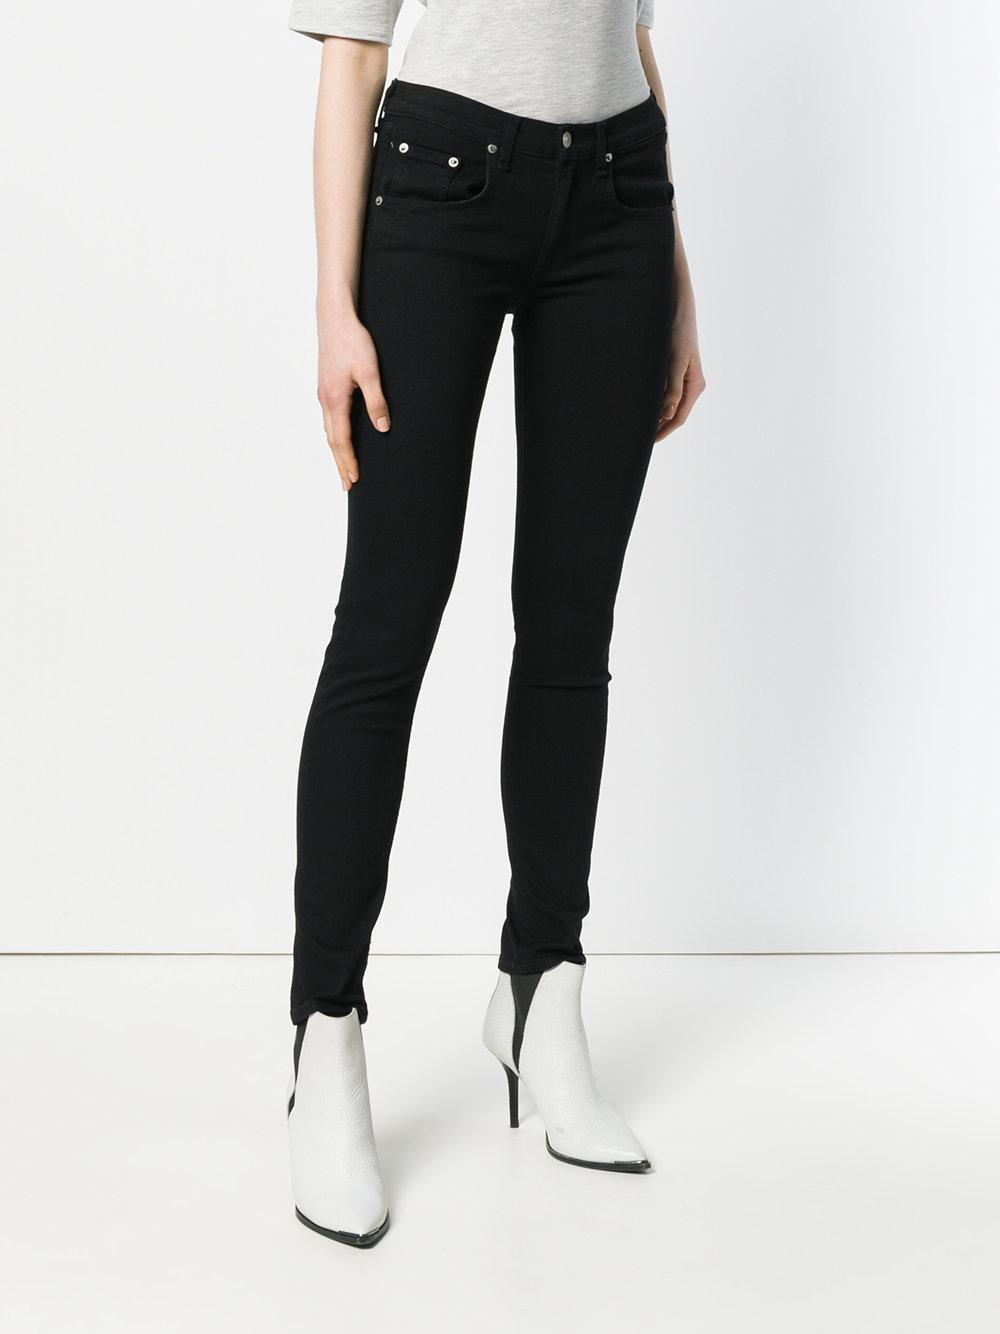 Rag & Bone Denim Slim Fit Jeans in Black